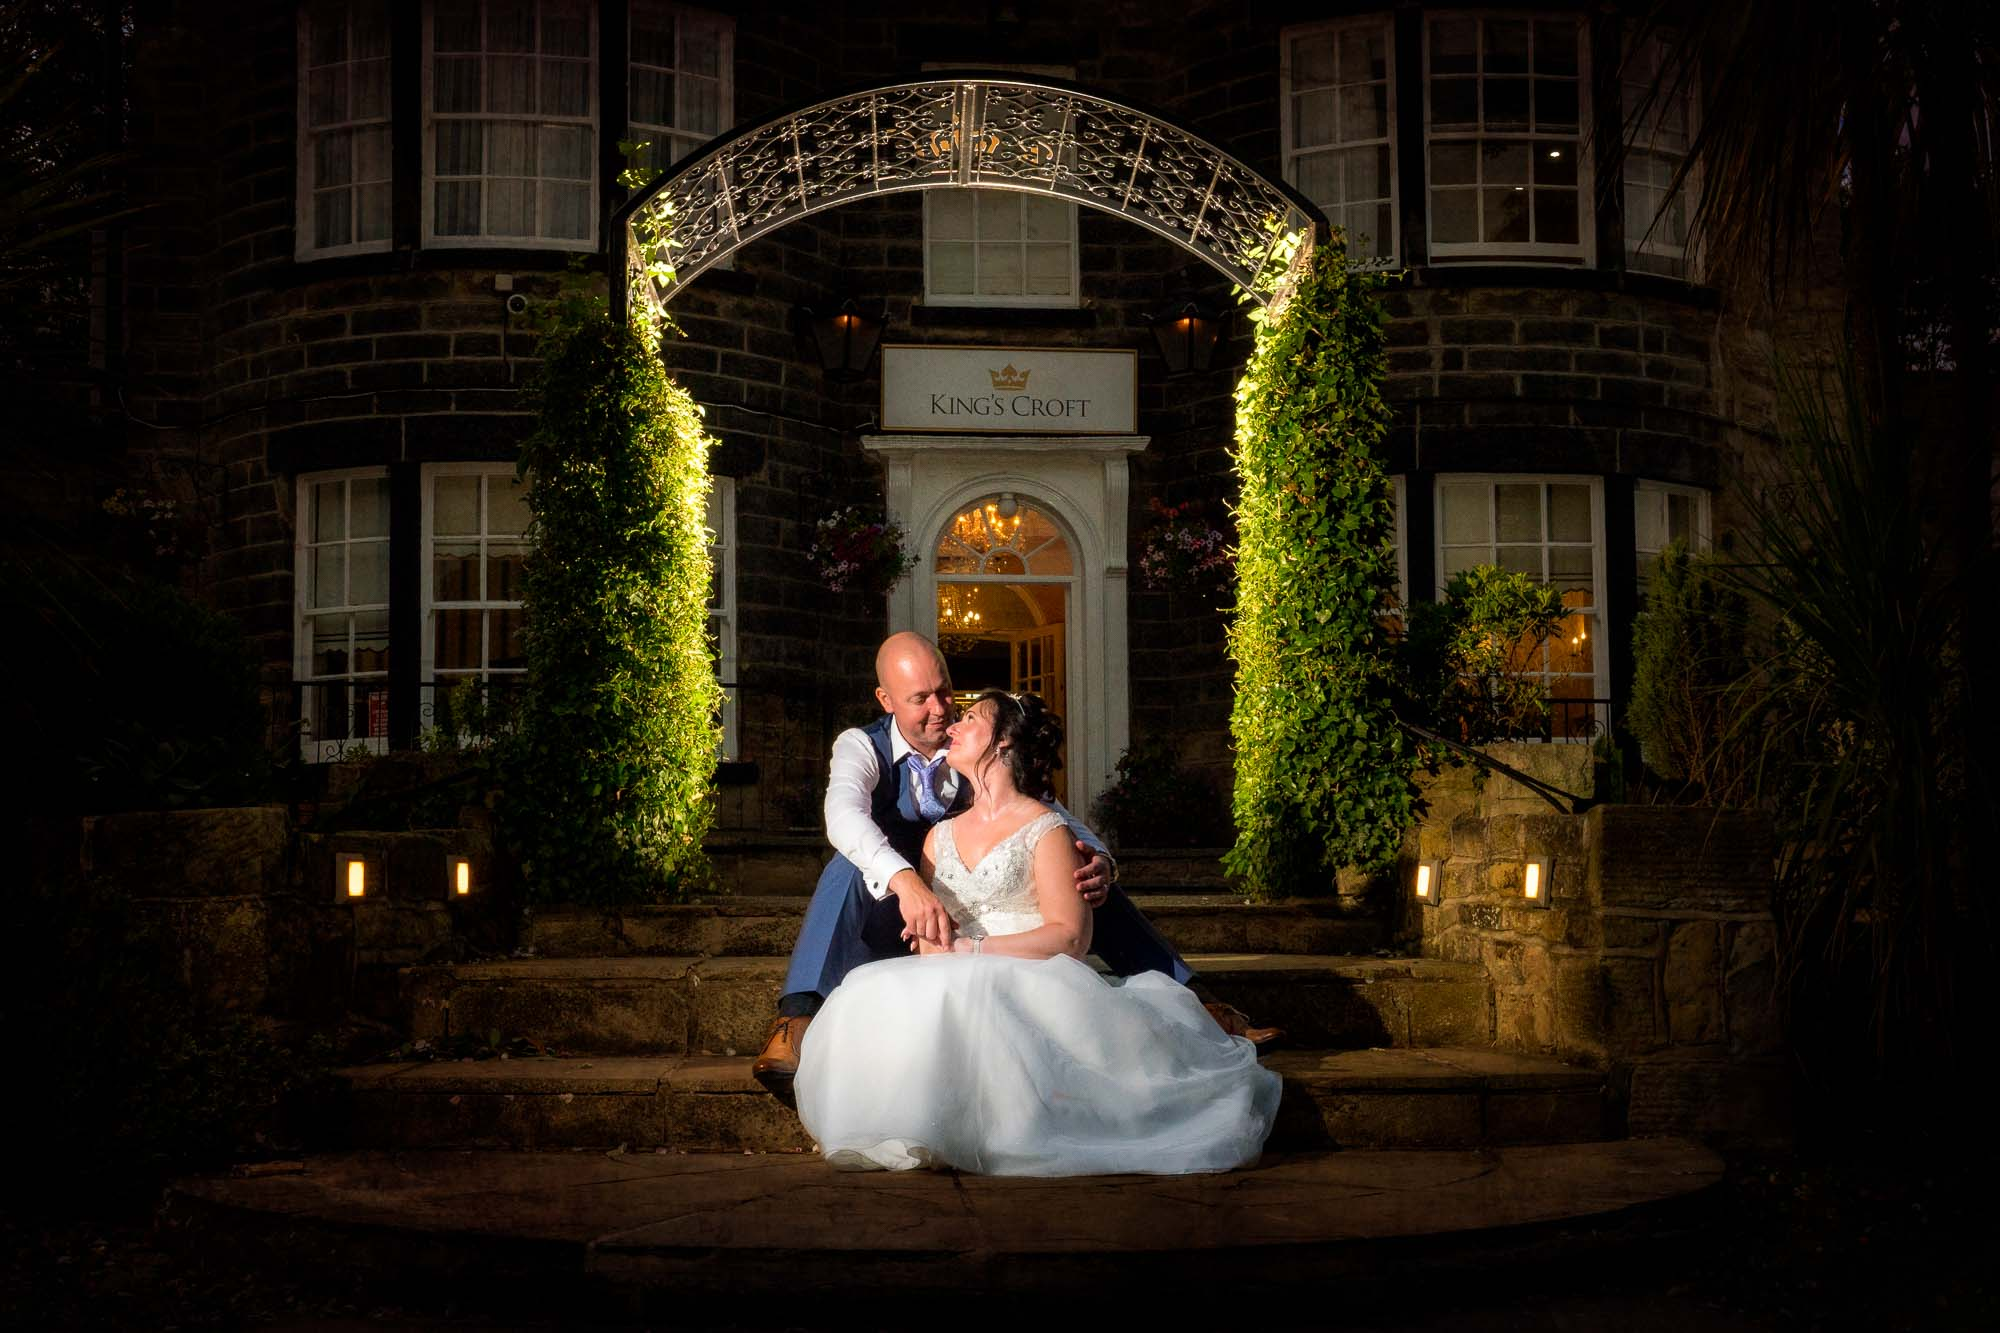 Twilight photographs at Kings Croft Hotel in Pontefract